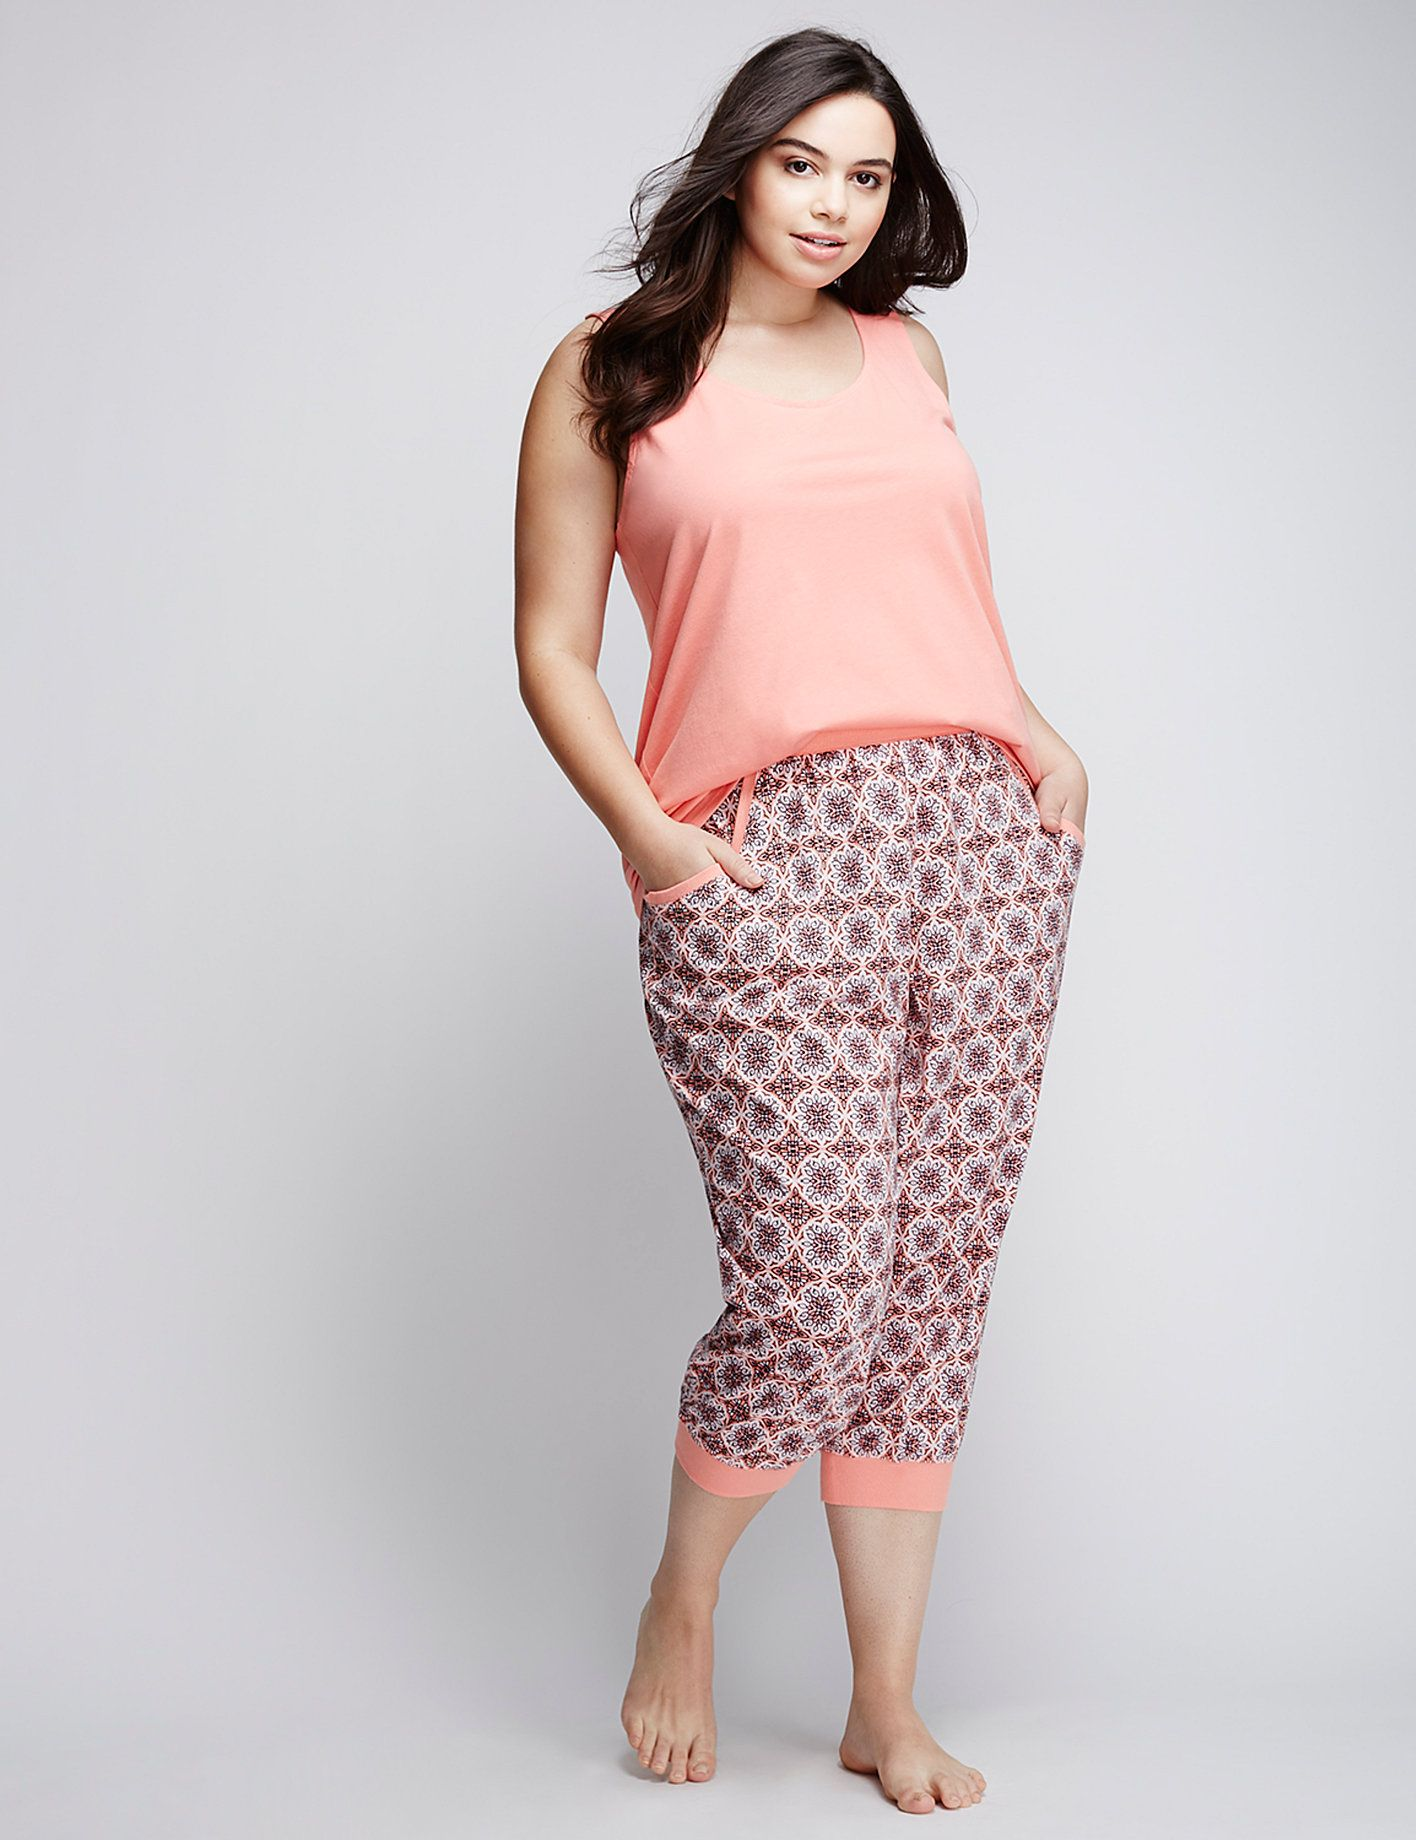 f4b1f2d842d6 Plus Size Sleepwear & Women's Loungewear | Lane Bryant ...